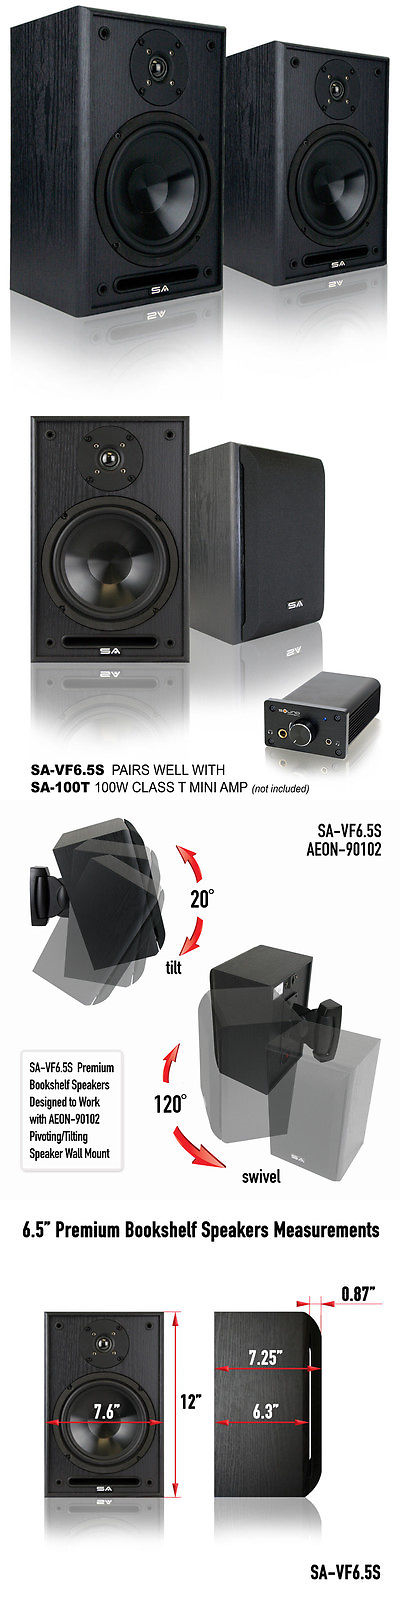 Home Speakers And Subwoofers Sound Appeal 20 System 65 Indoor Premium Bookshelf 1